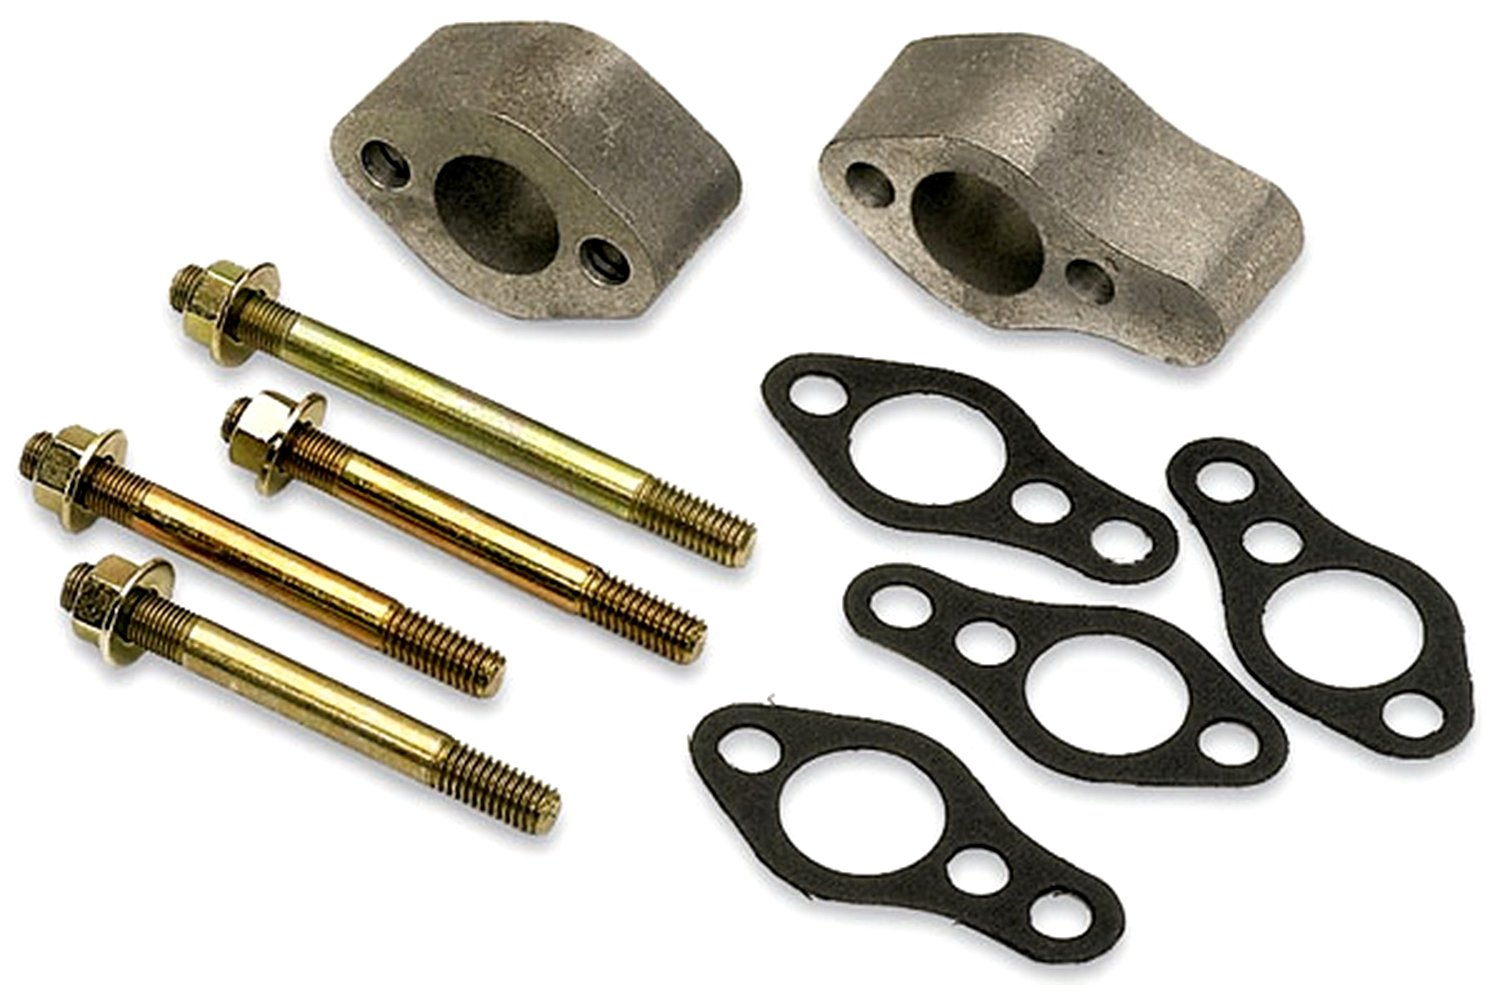 Moroso 63510 Water Pump Spacer Kit for Small Block Chevy by Moroso